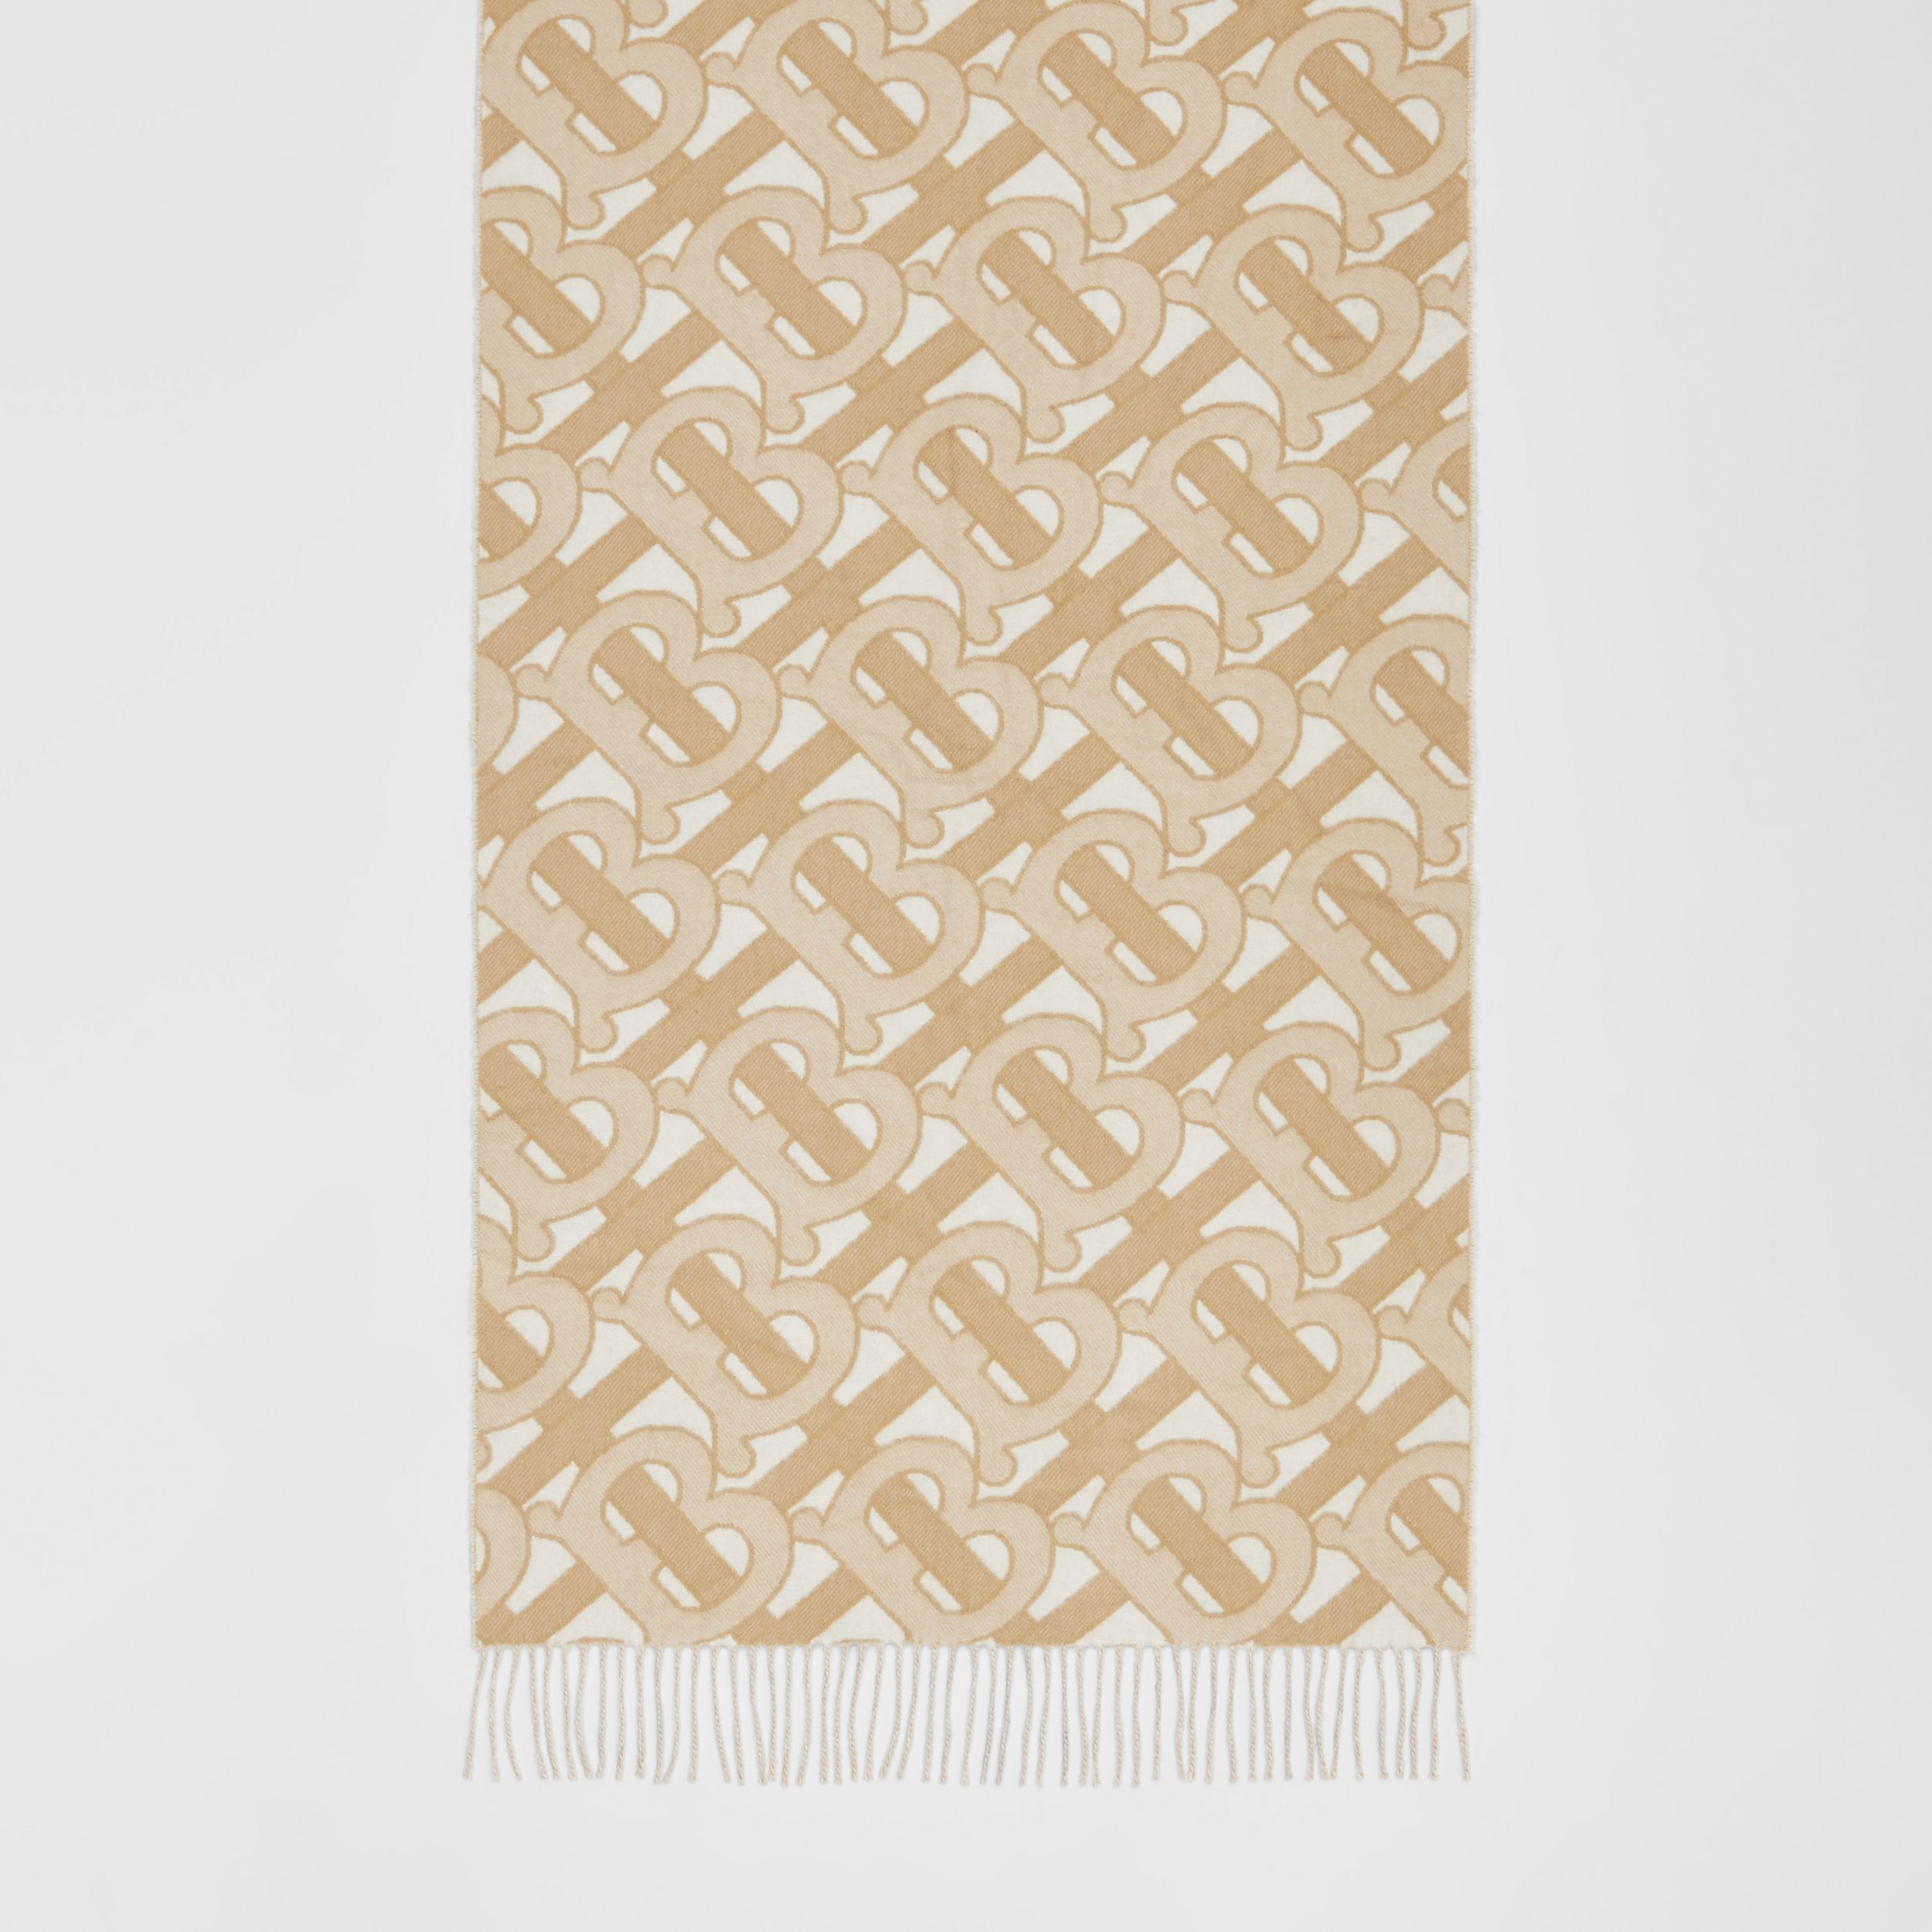 Monogram Cashmere Jacquard Scarf in Light Sand | Burberry United Kingdom - 4